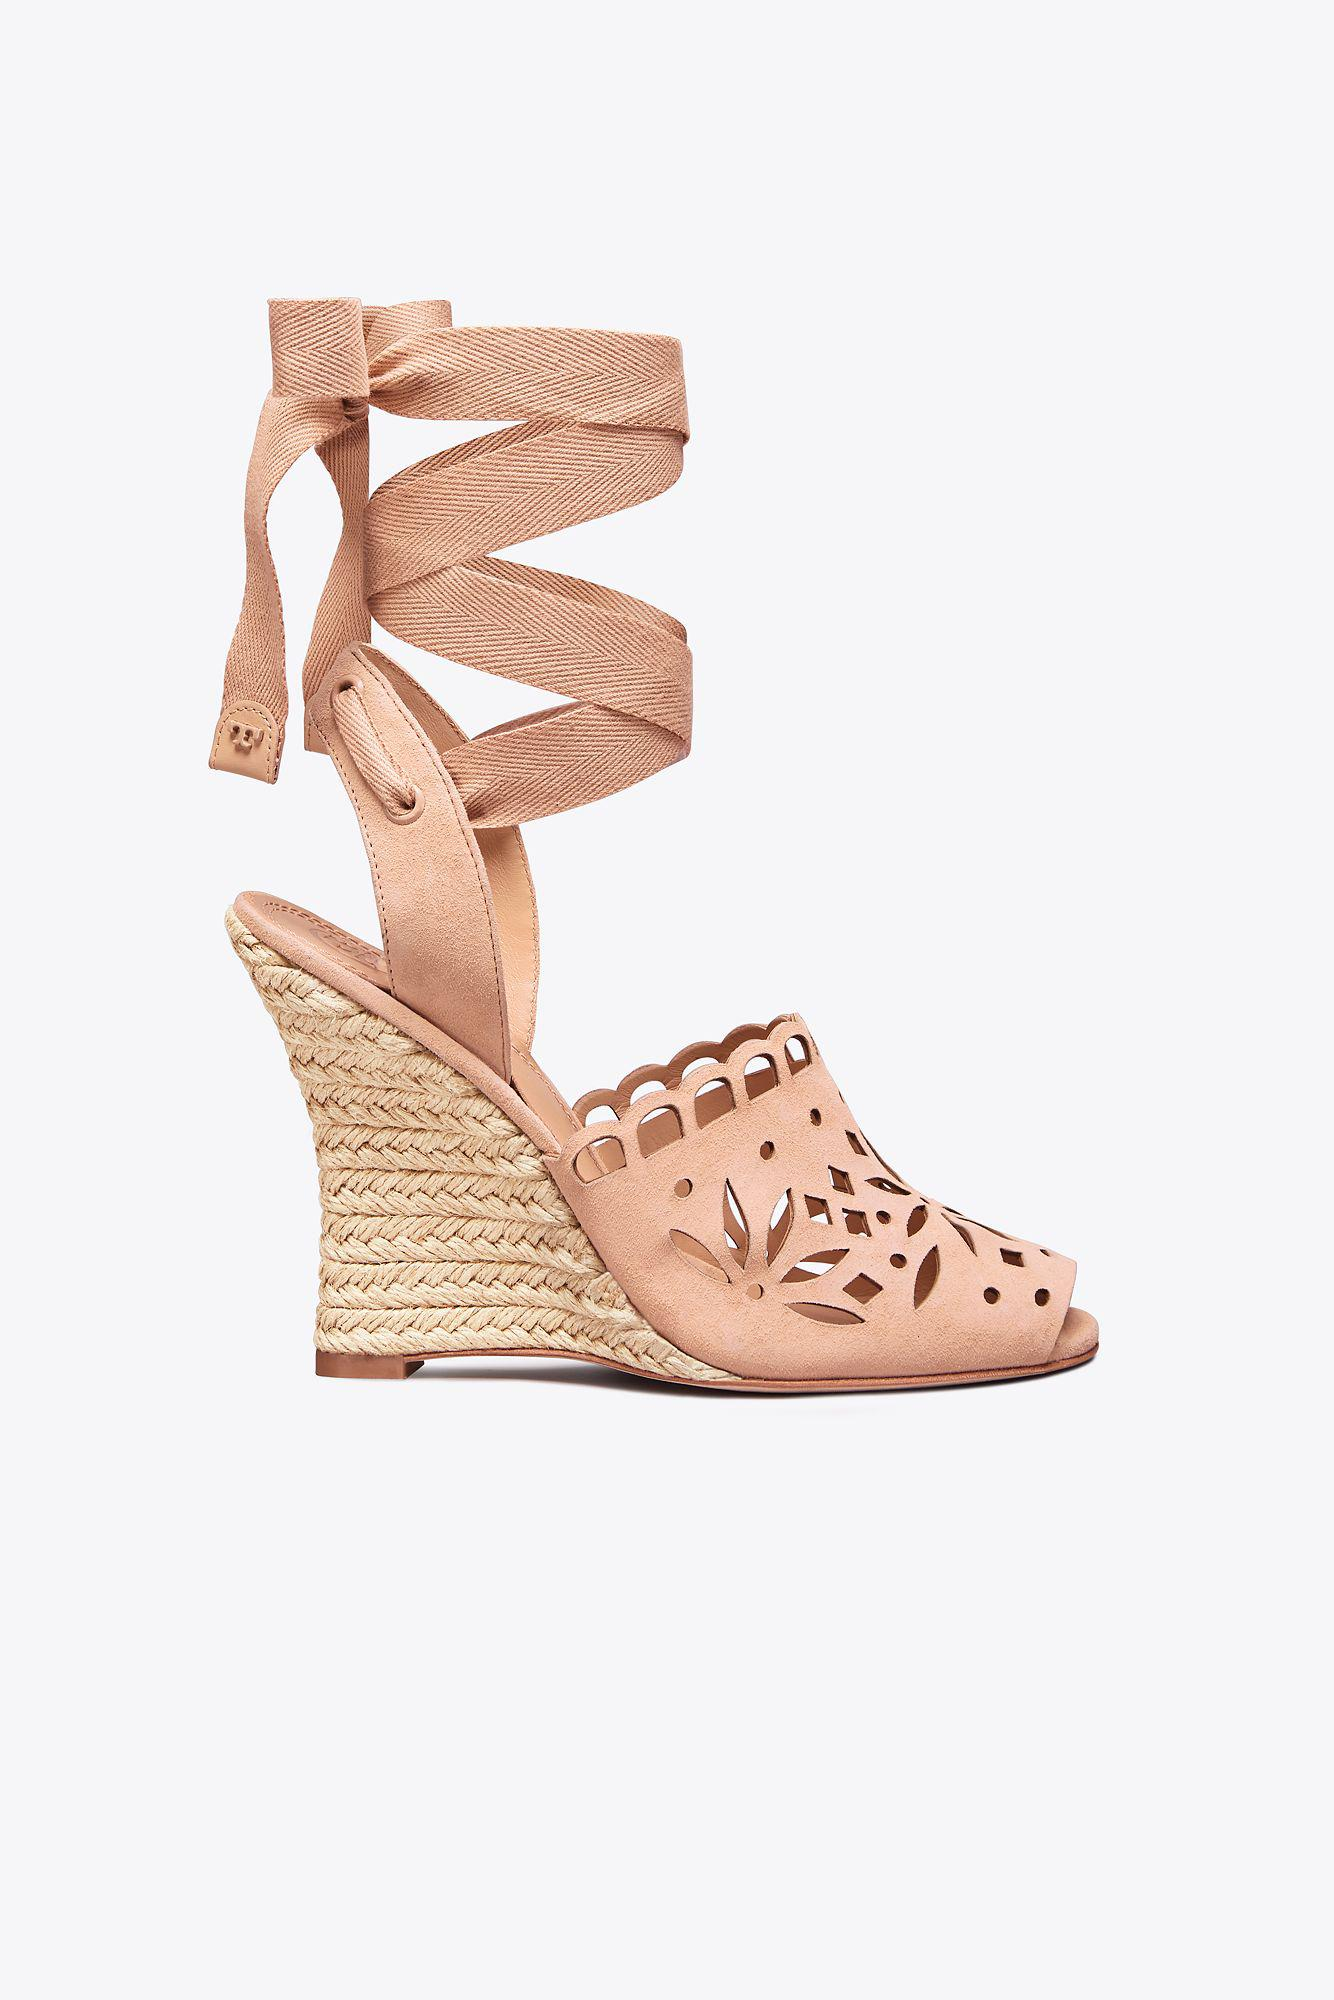 71ec11ff882 Lyst - Tory Burch May Lace-up Wedge